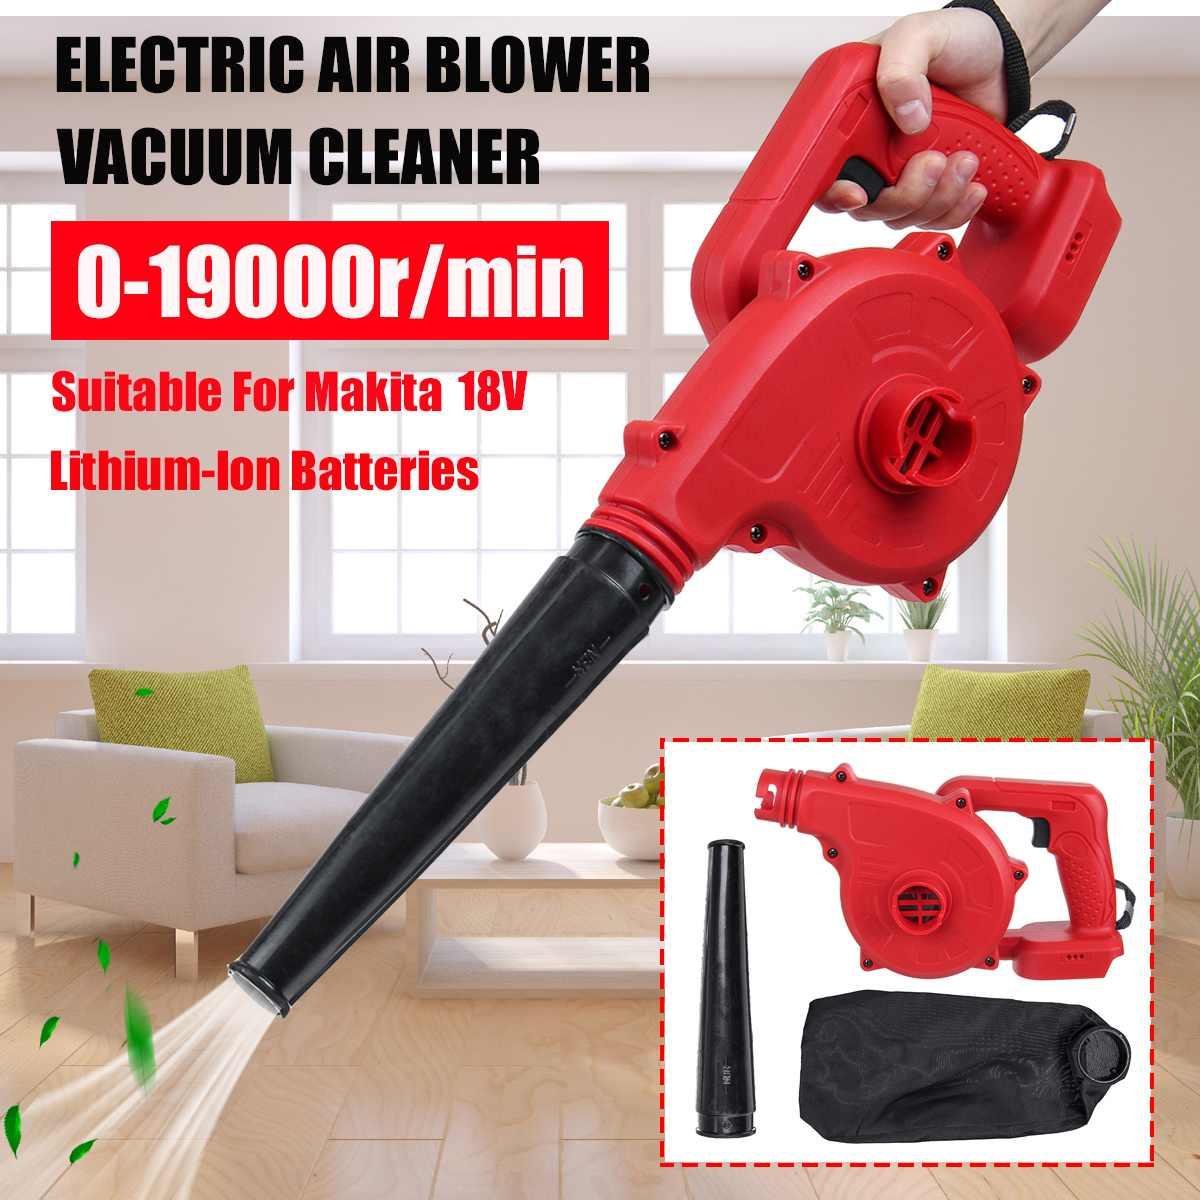 19000r/min Electric Air Blower Cordless Vacuum Cleaner Leaf Computer Dust Suction Cleaner For Makita 18V Li-ion Battery